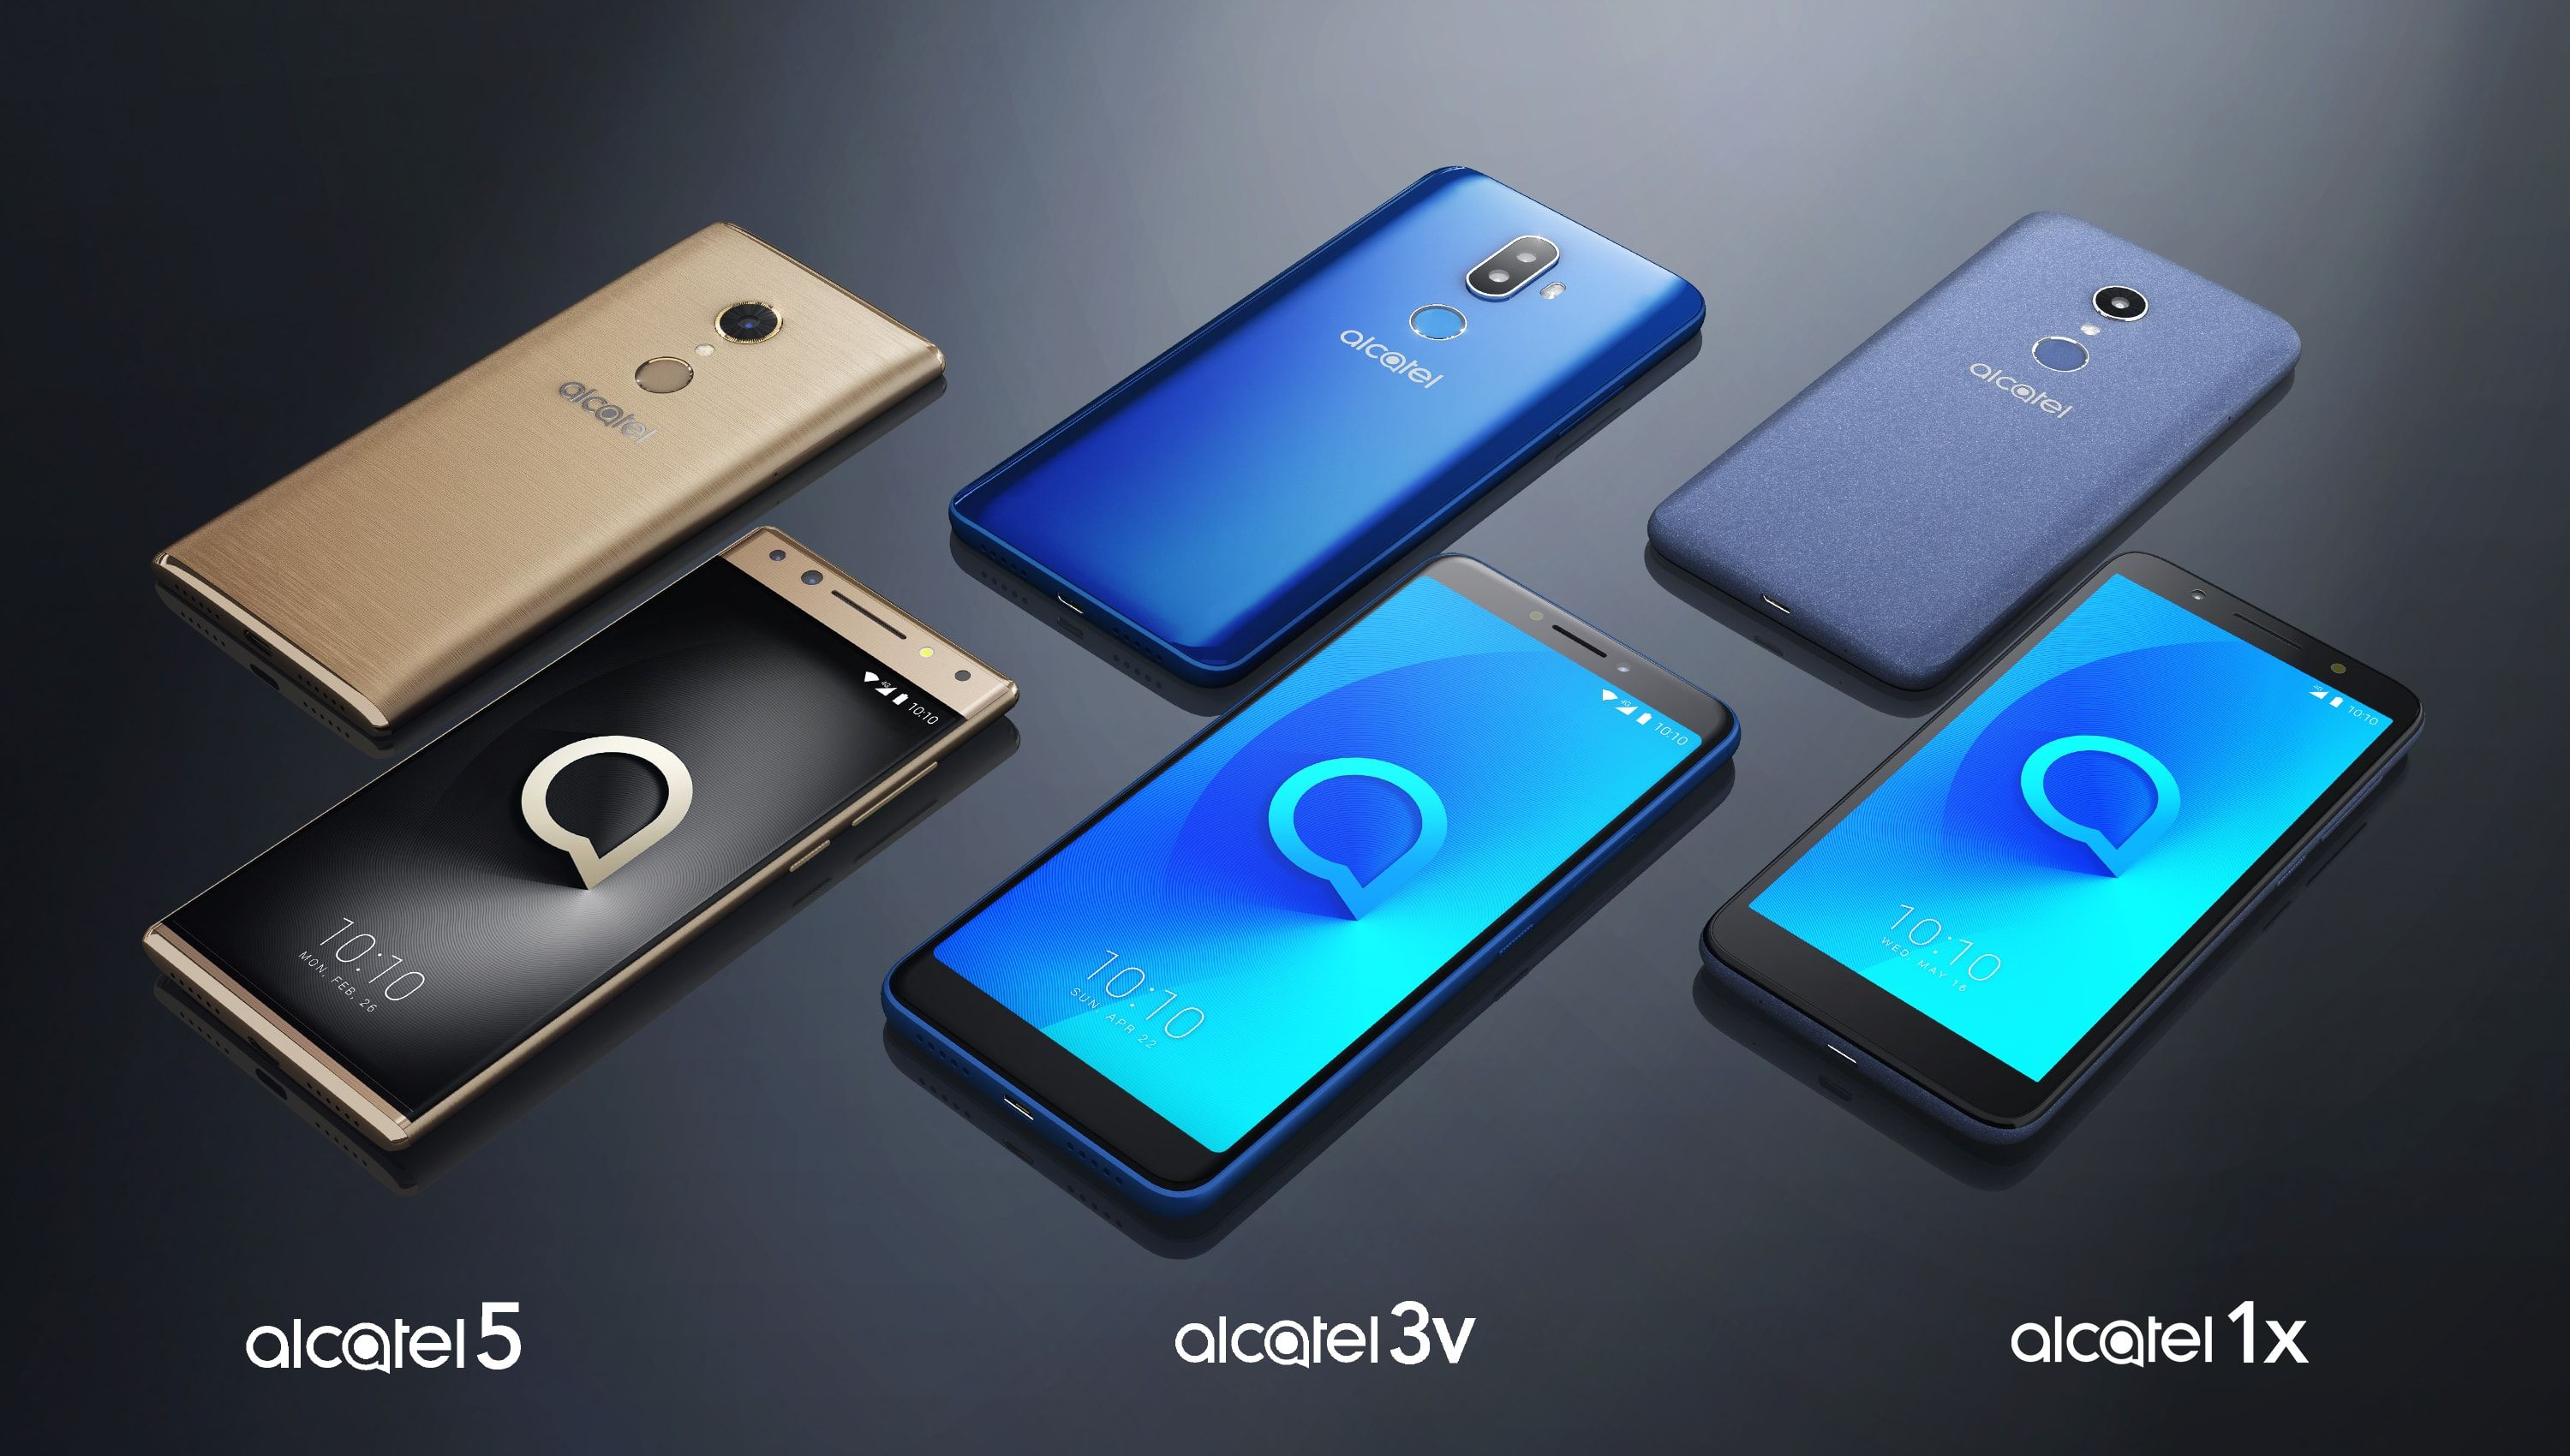 TCL launches three new Alcatel phones at CES 2018 | Nerd Stuff